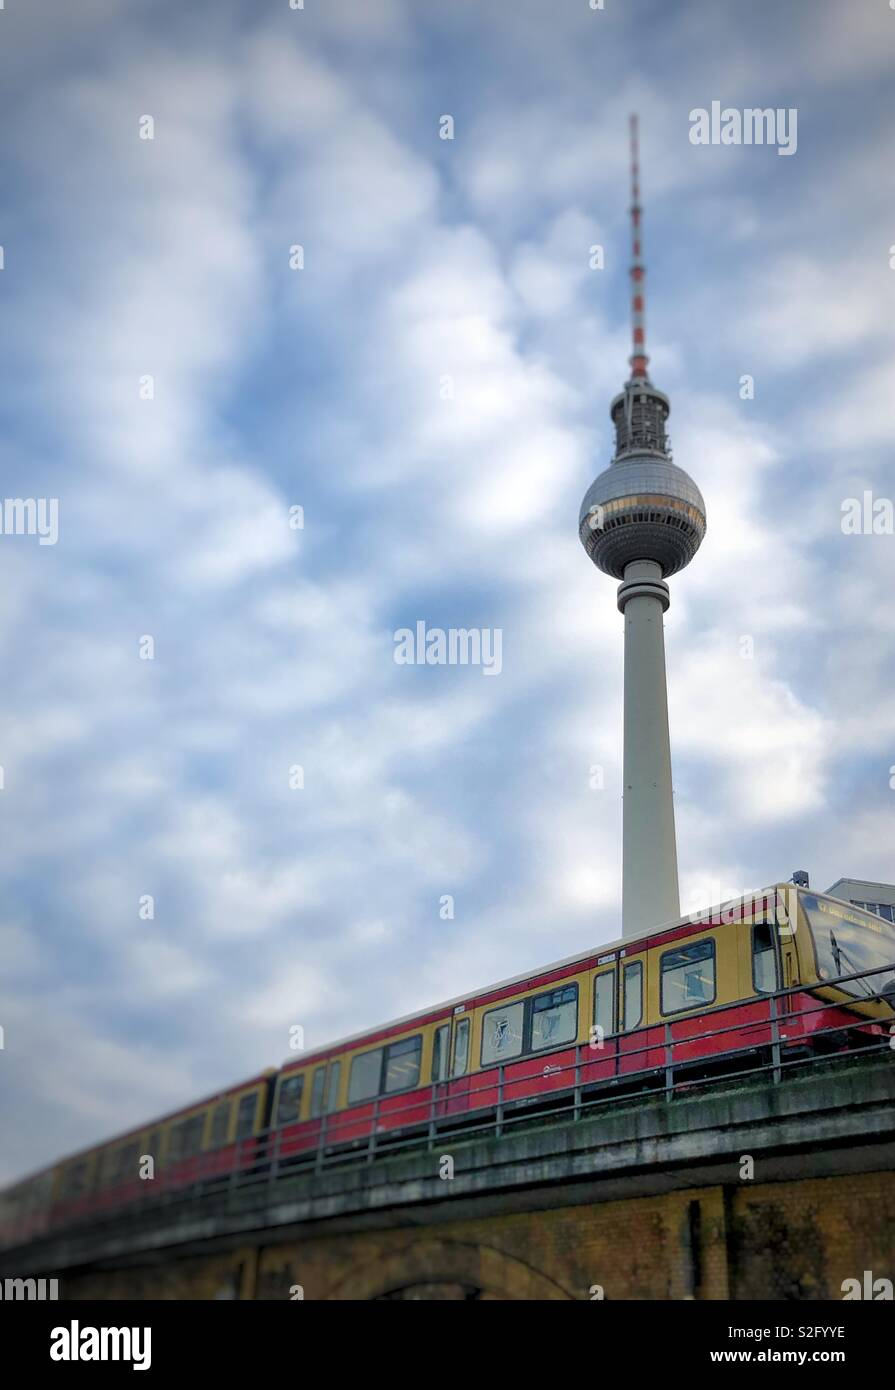 S-Bahn train in city of Berlin with television tower Stock Photo